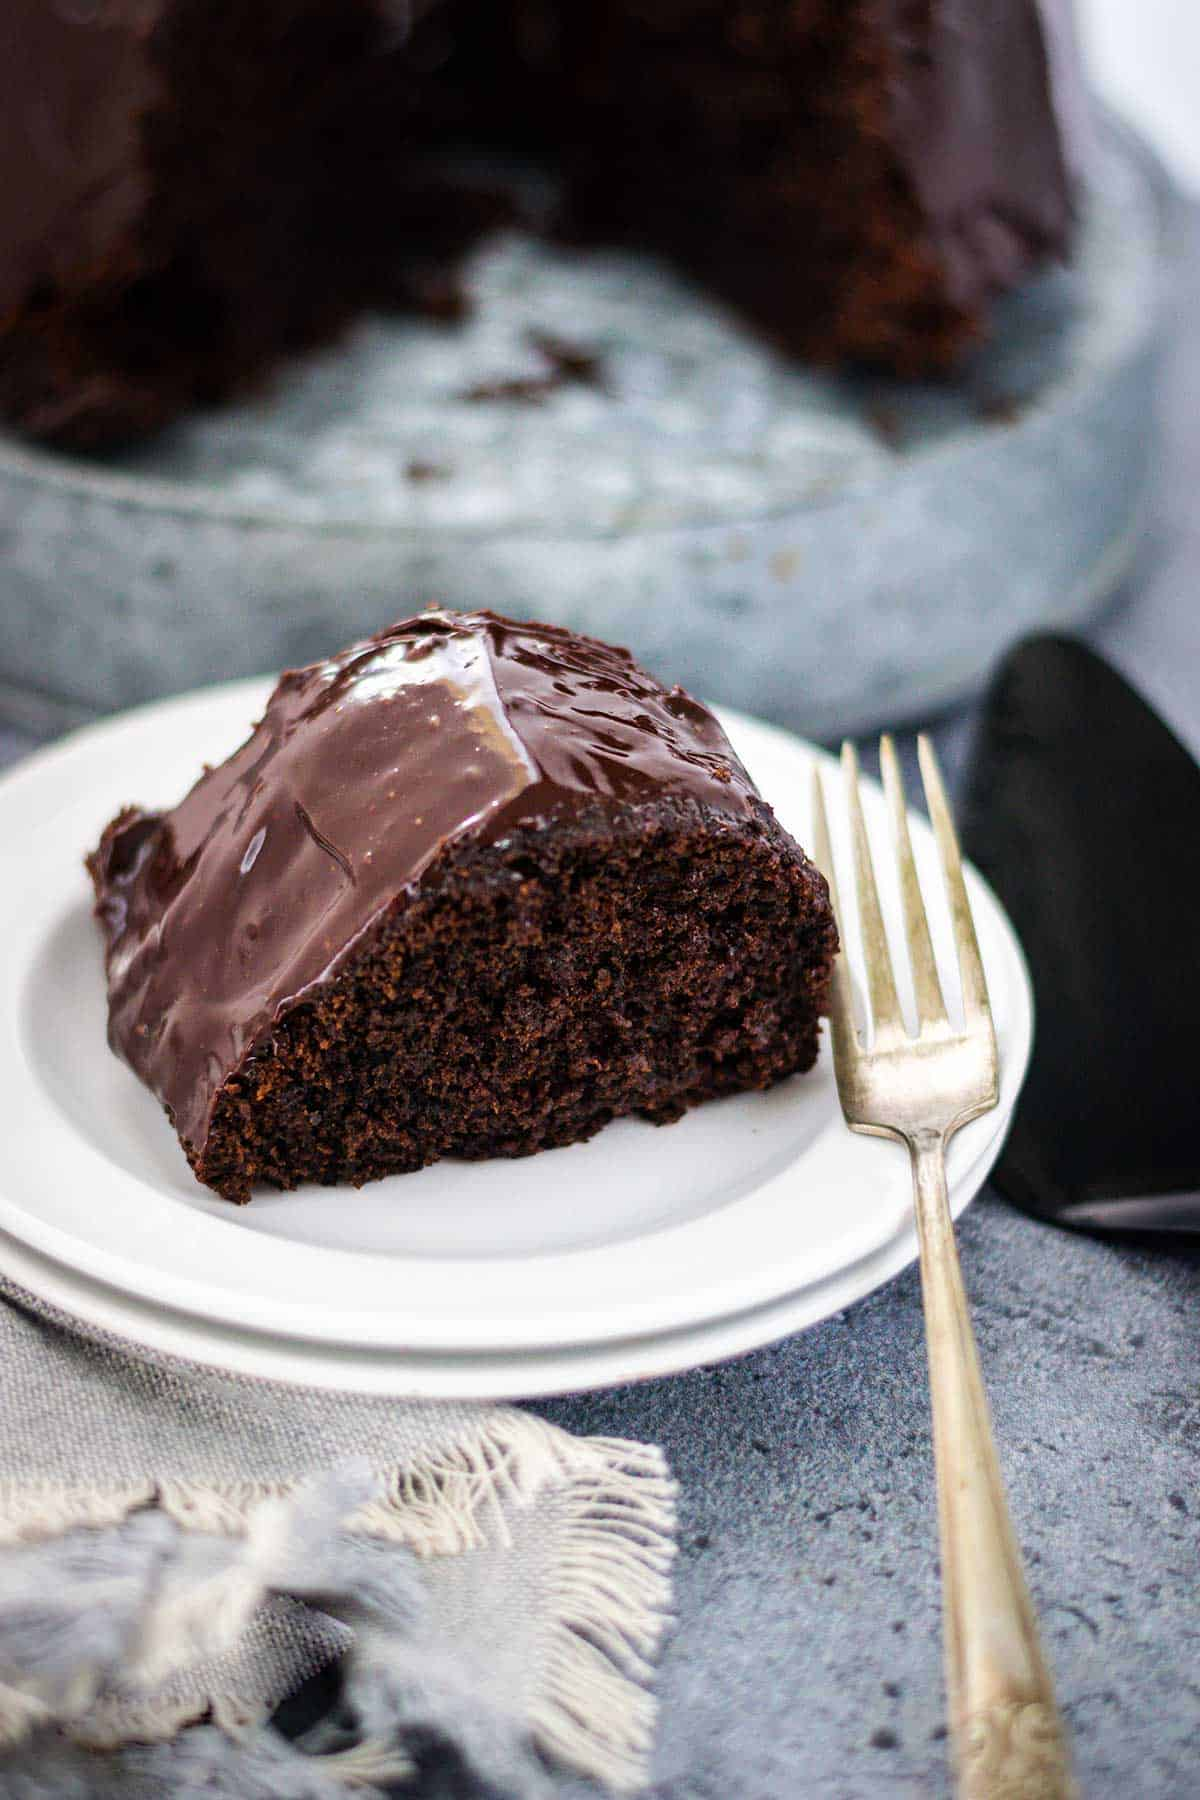 Chocolate brownie cake with a fork to the side. Place on a gray tablescape with a black cake server..